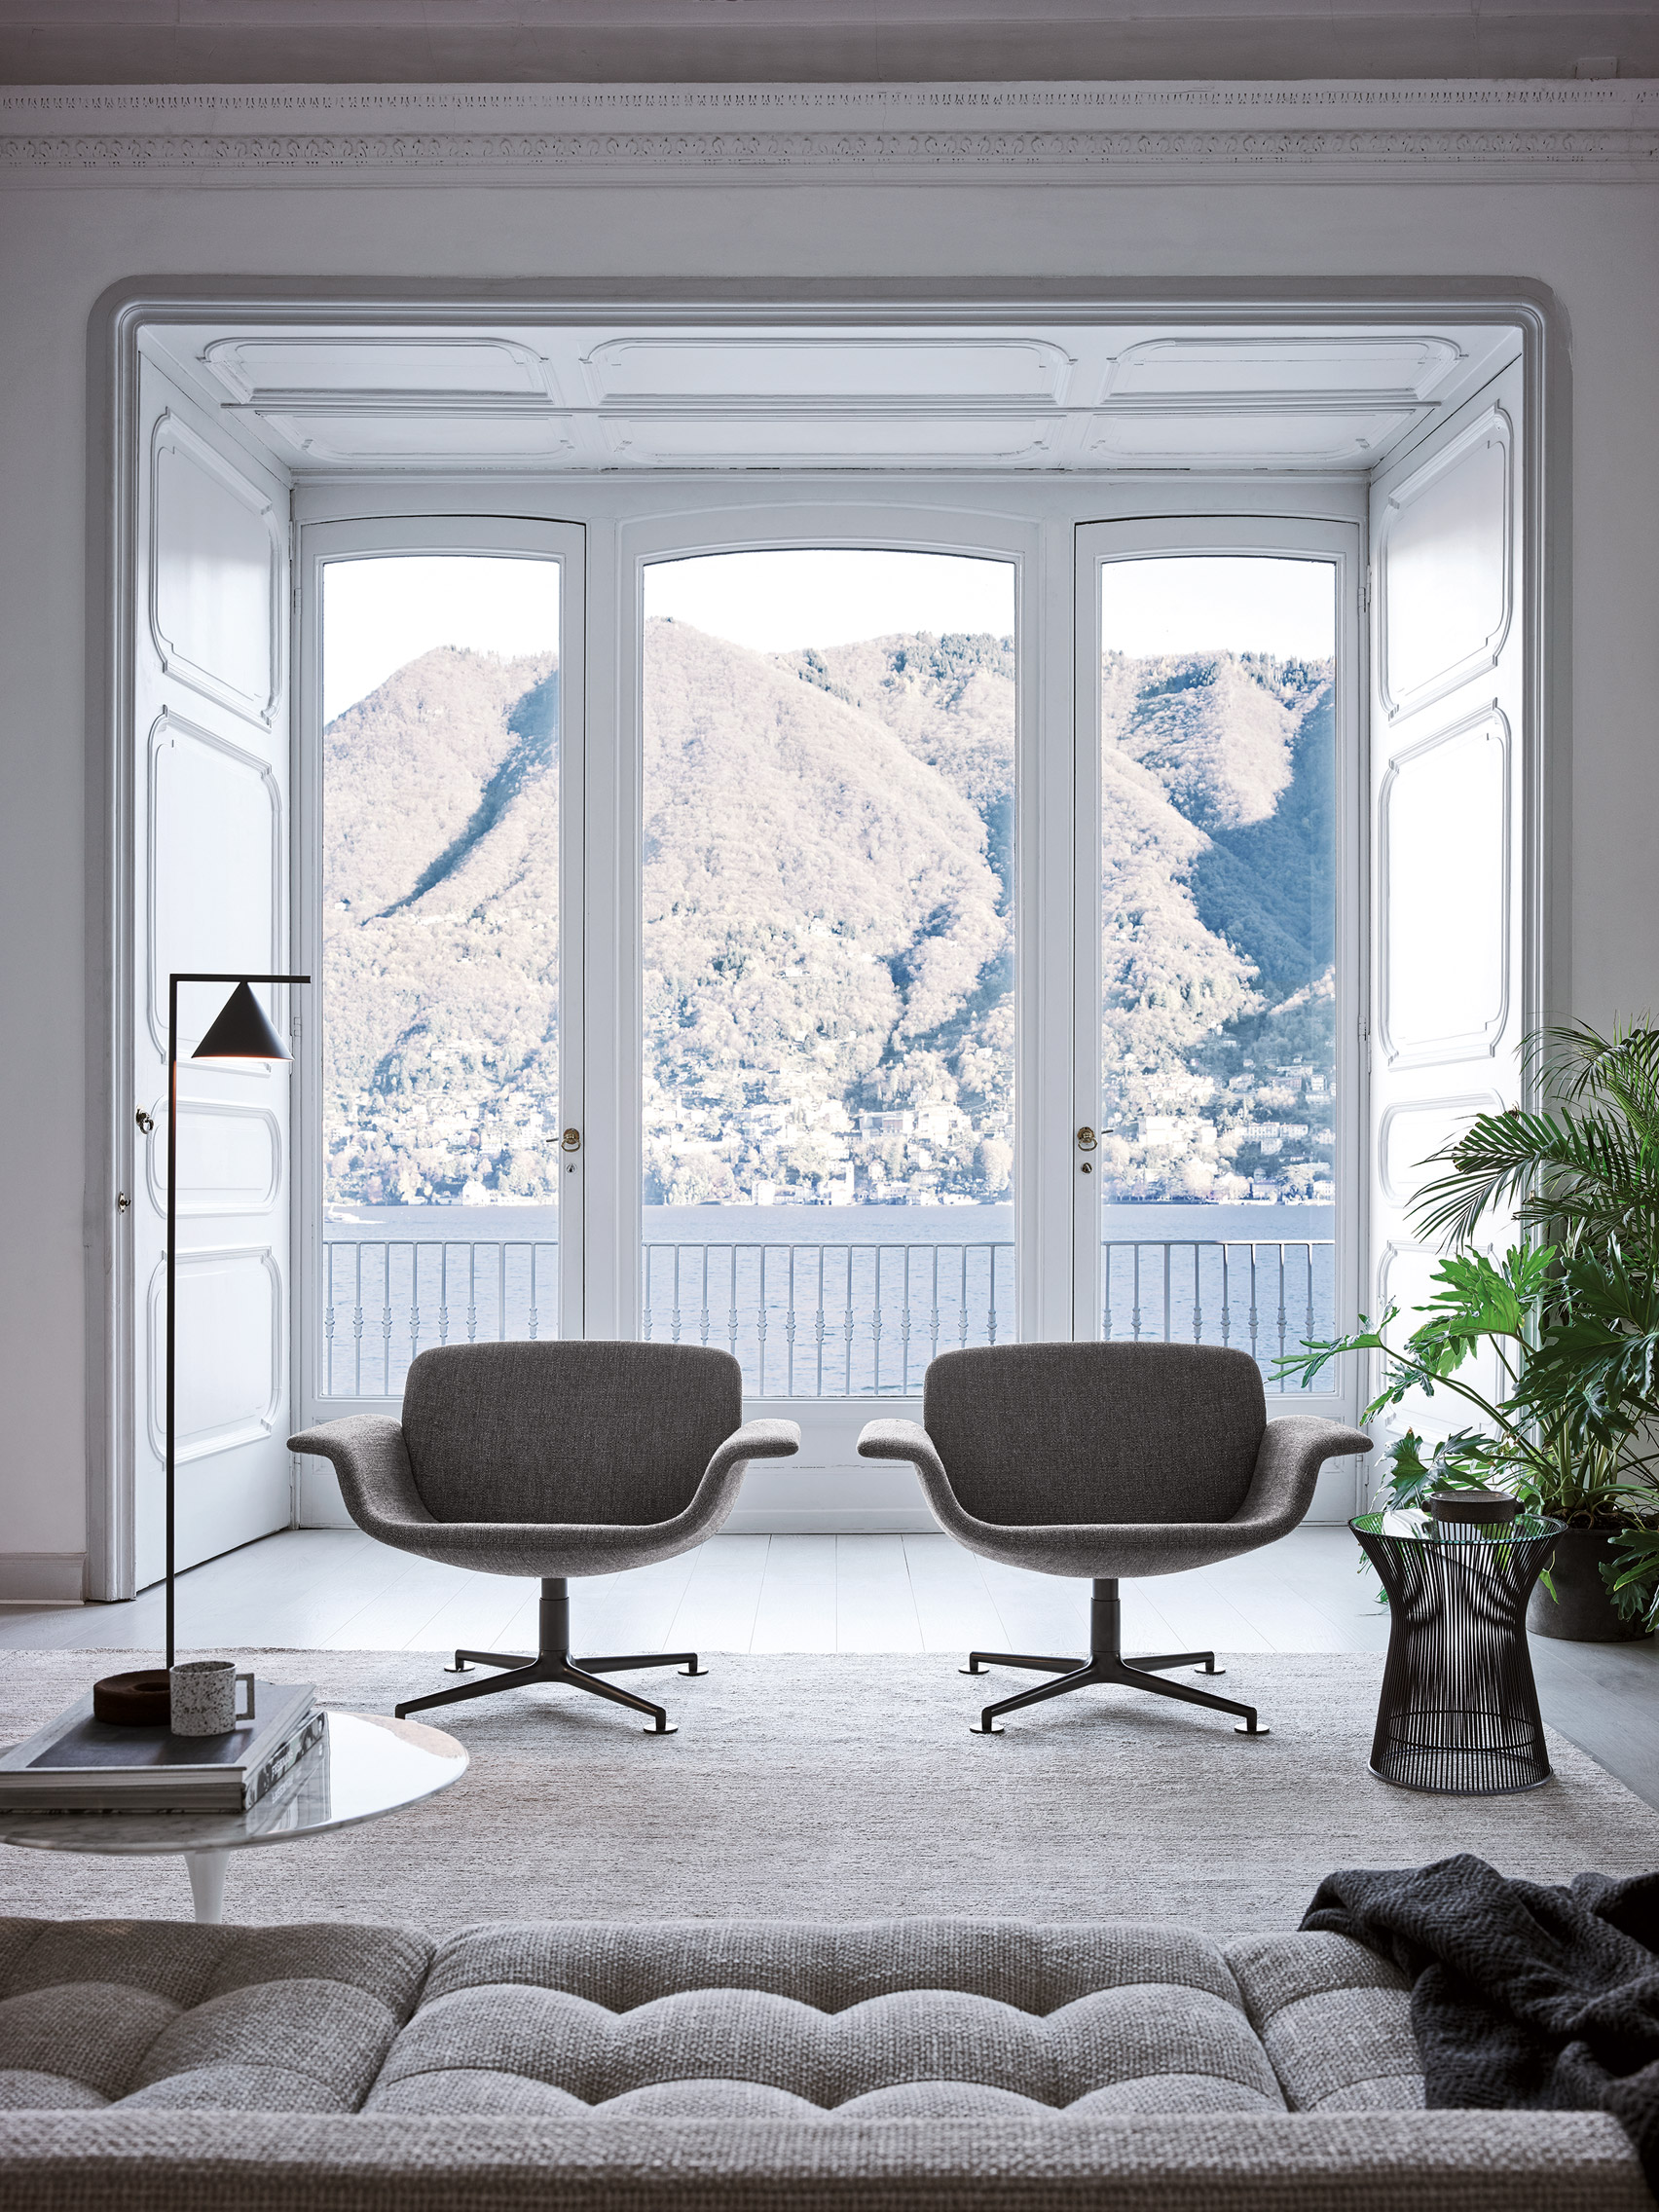 A pair of KN01 chairs